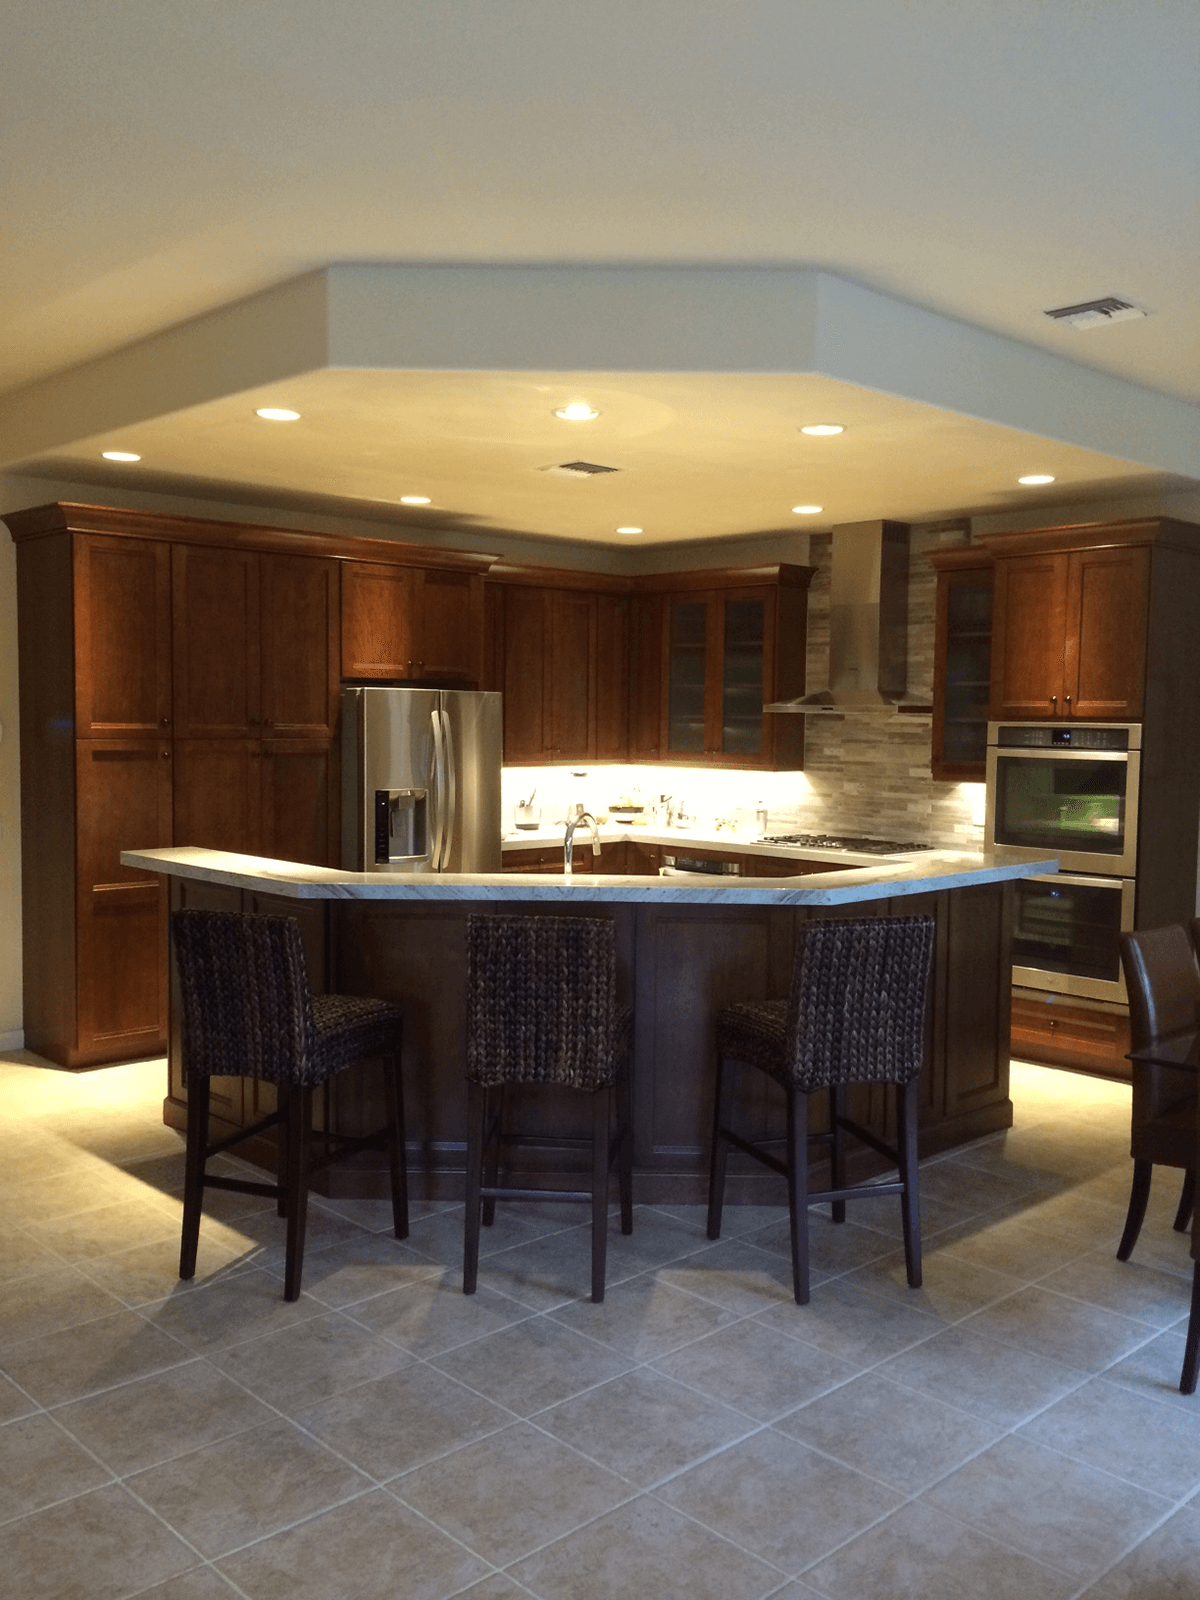 Southern California Home Remodeling Photos Rbc